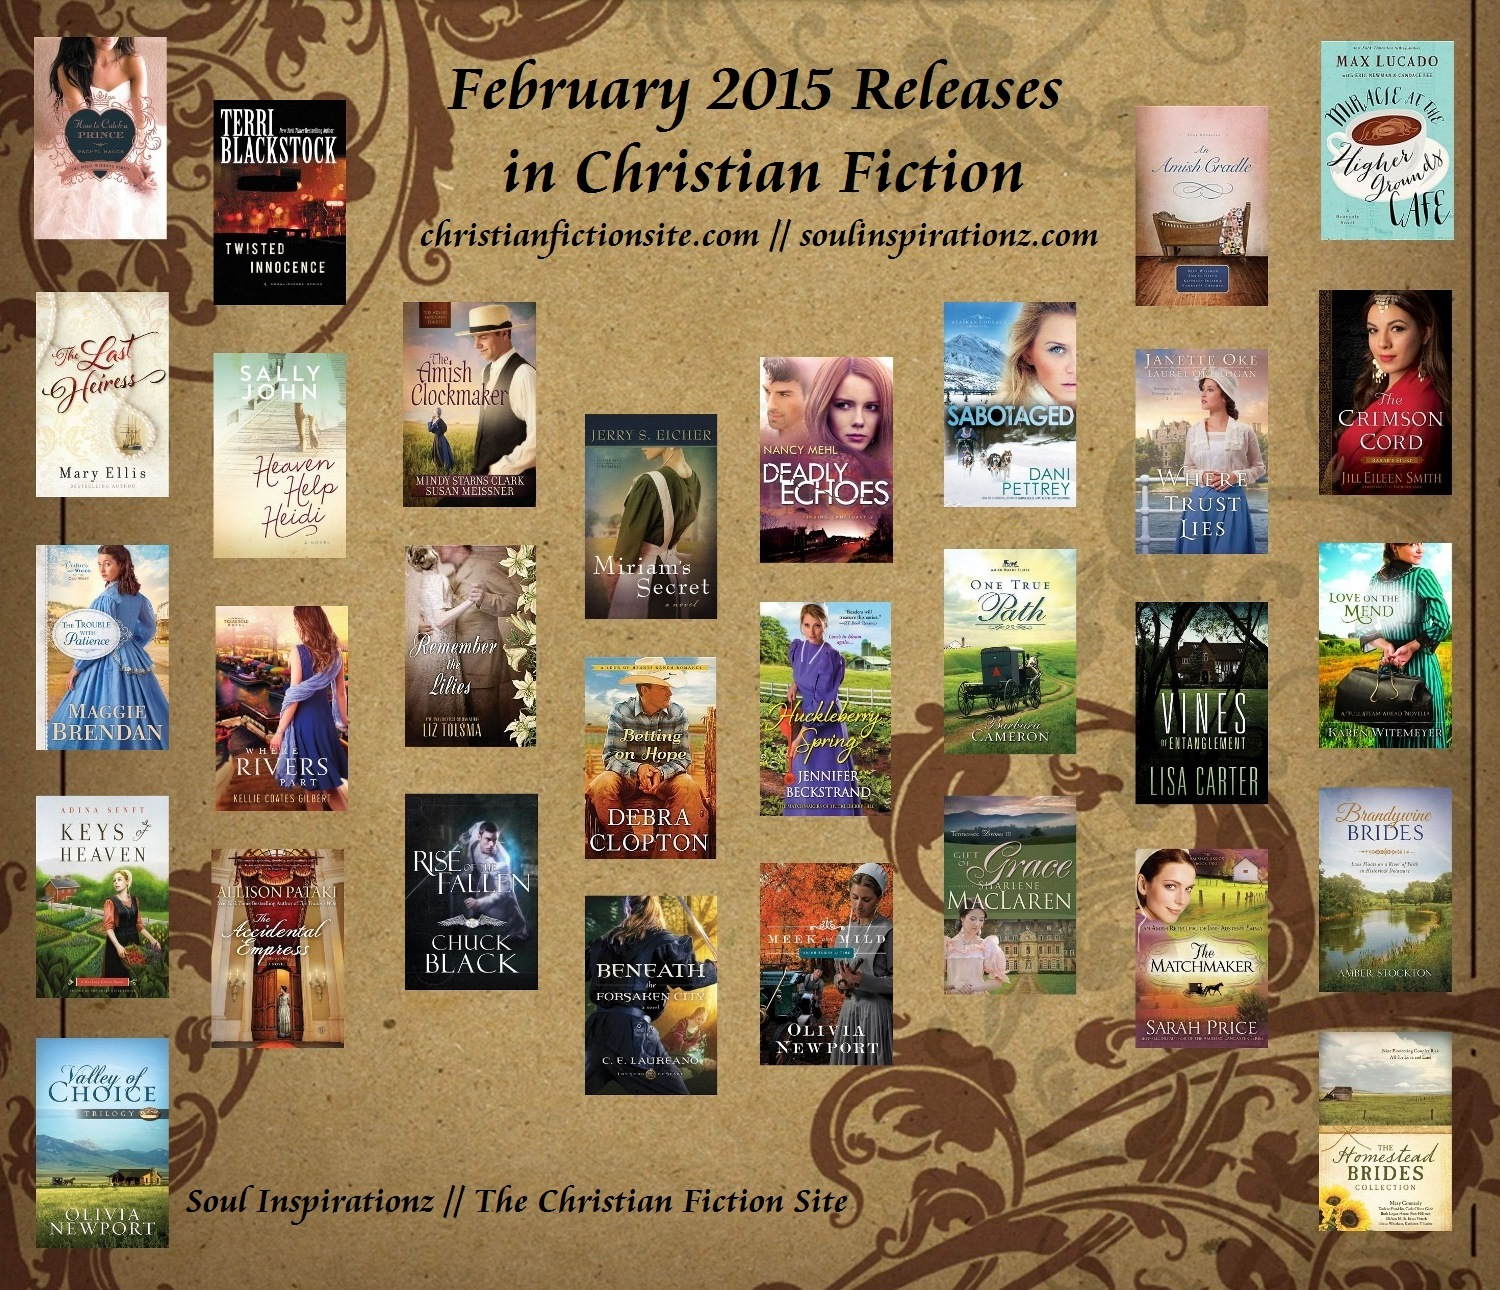 February 2015 Christian Fiction